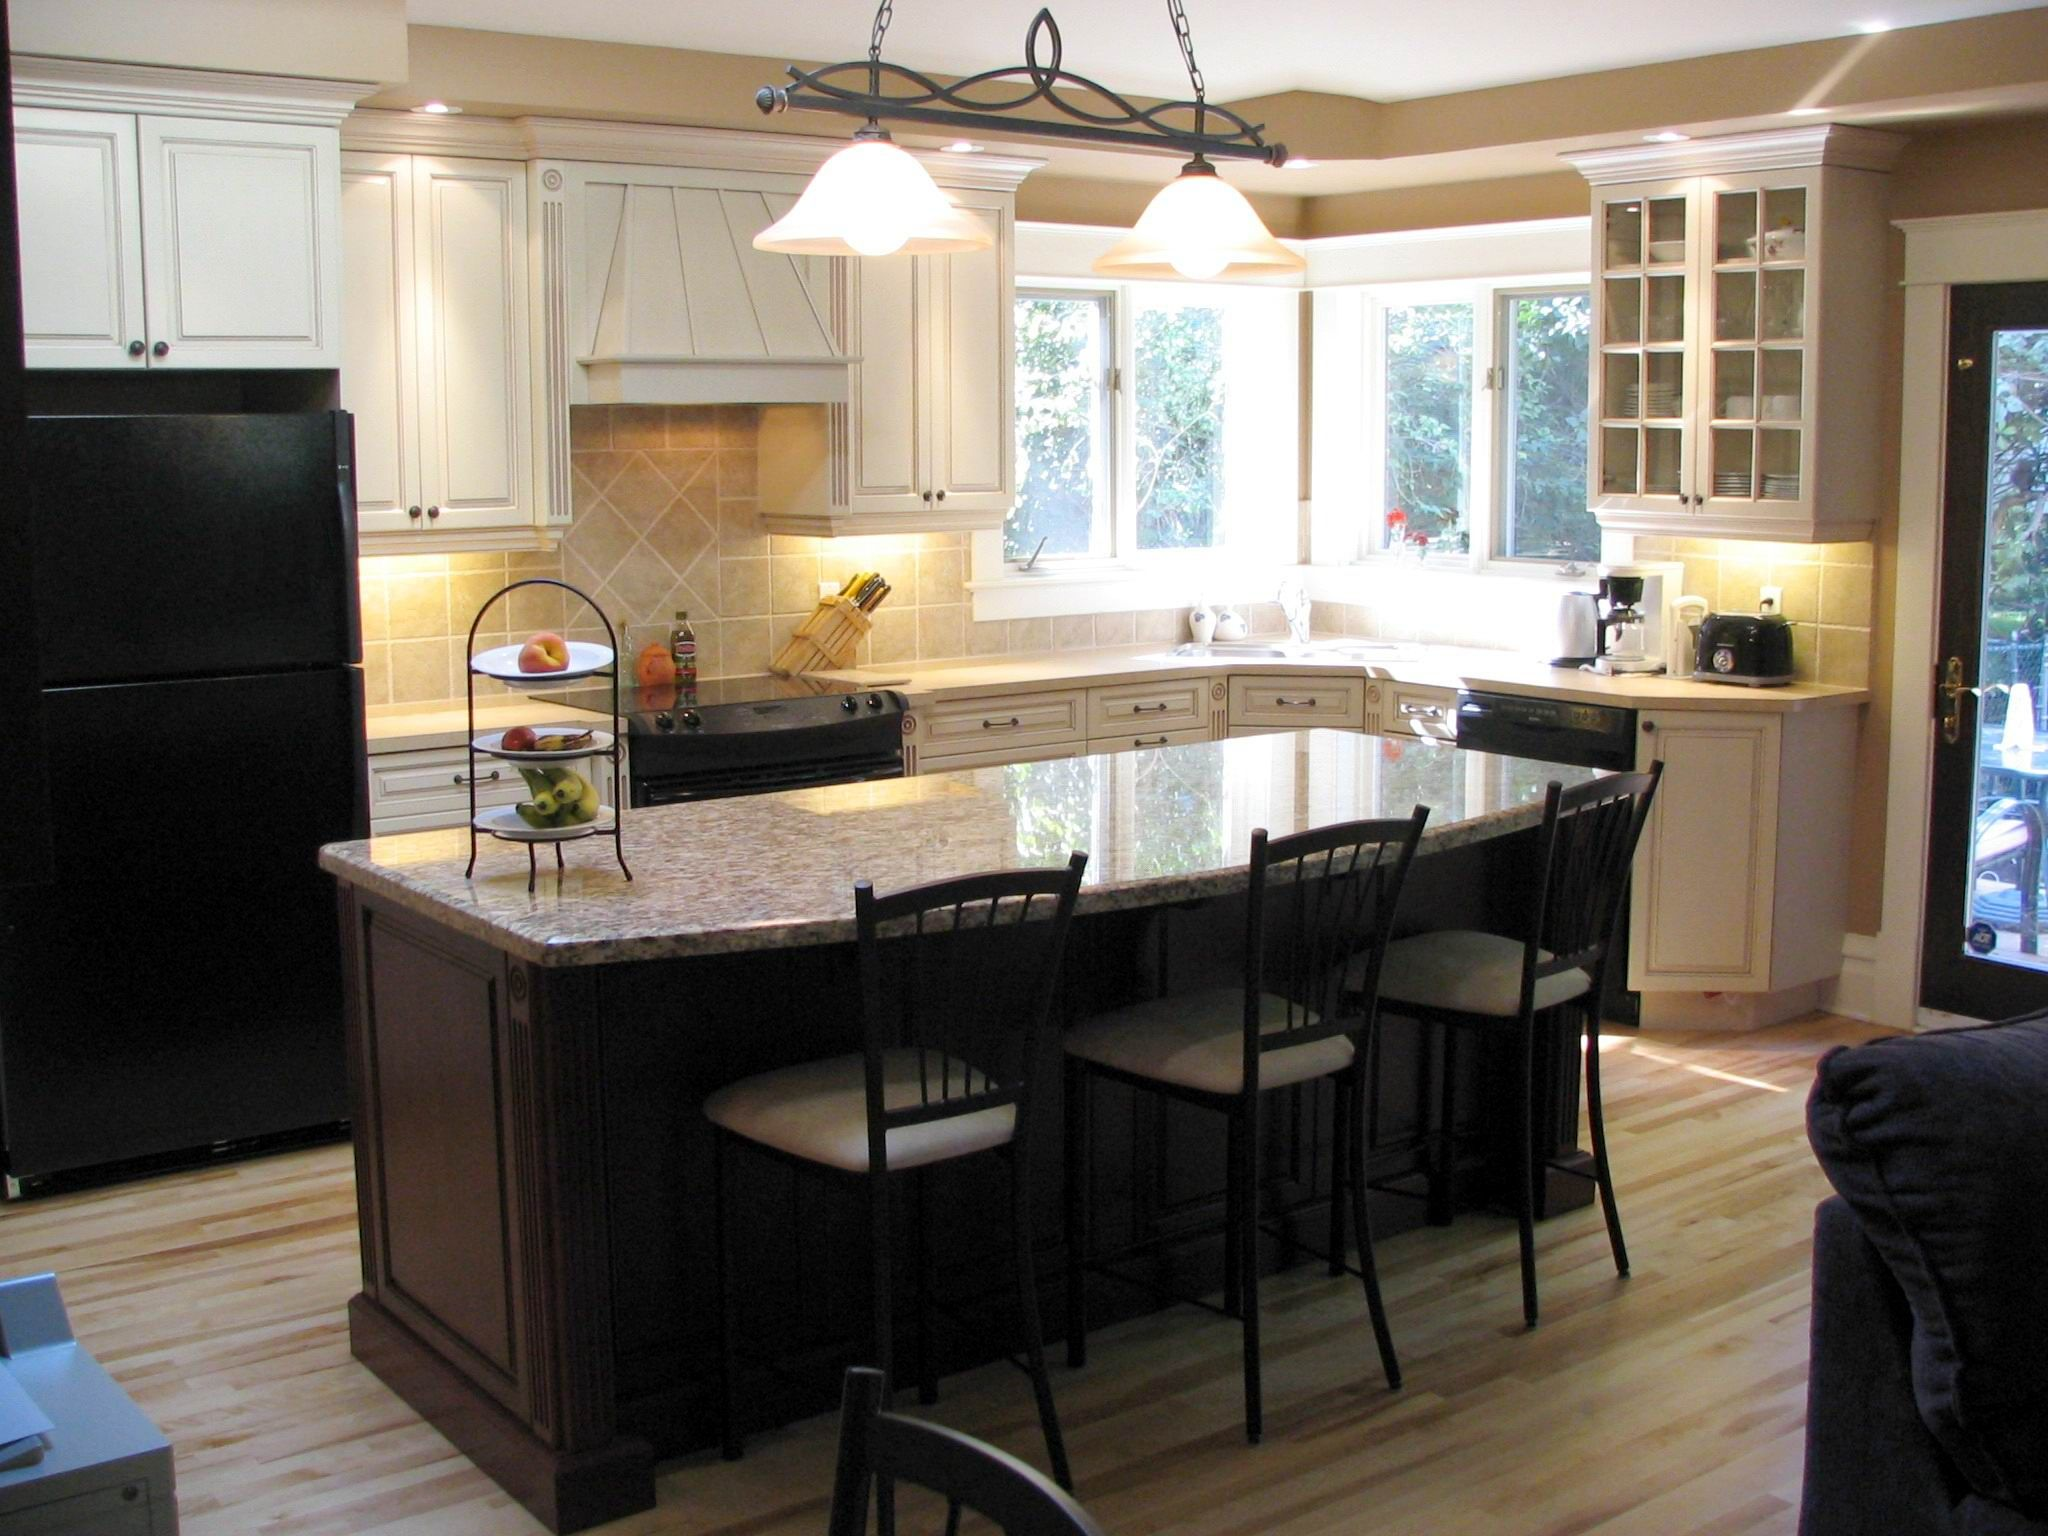 Kitchen Craft Marquis Maple Cabinets Seashell Lacquer W Mocha Glaze Cherry Bordeaux Island Kitchen Crafts Maple Cabinets Kitchen